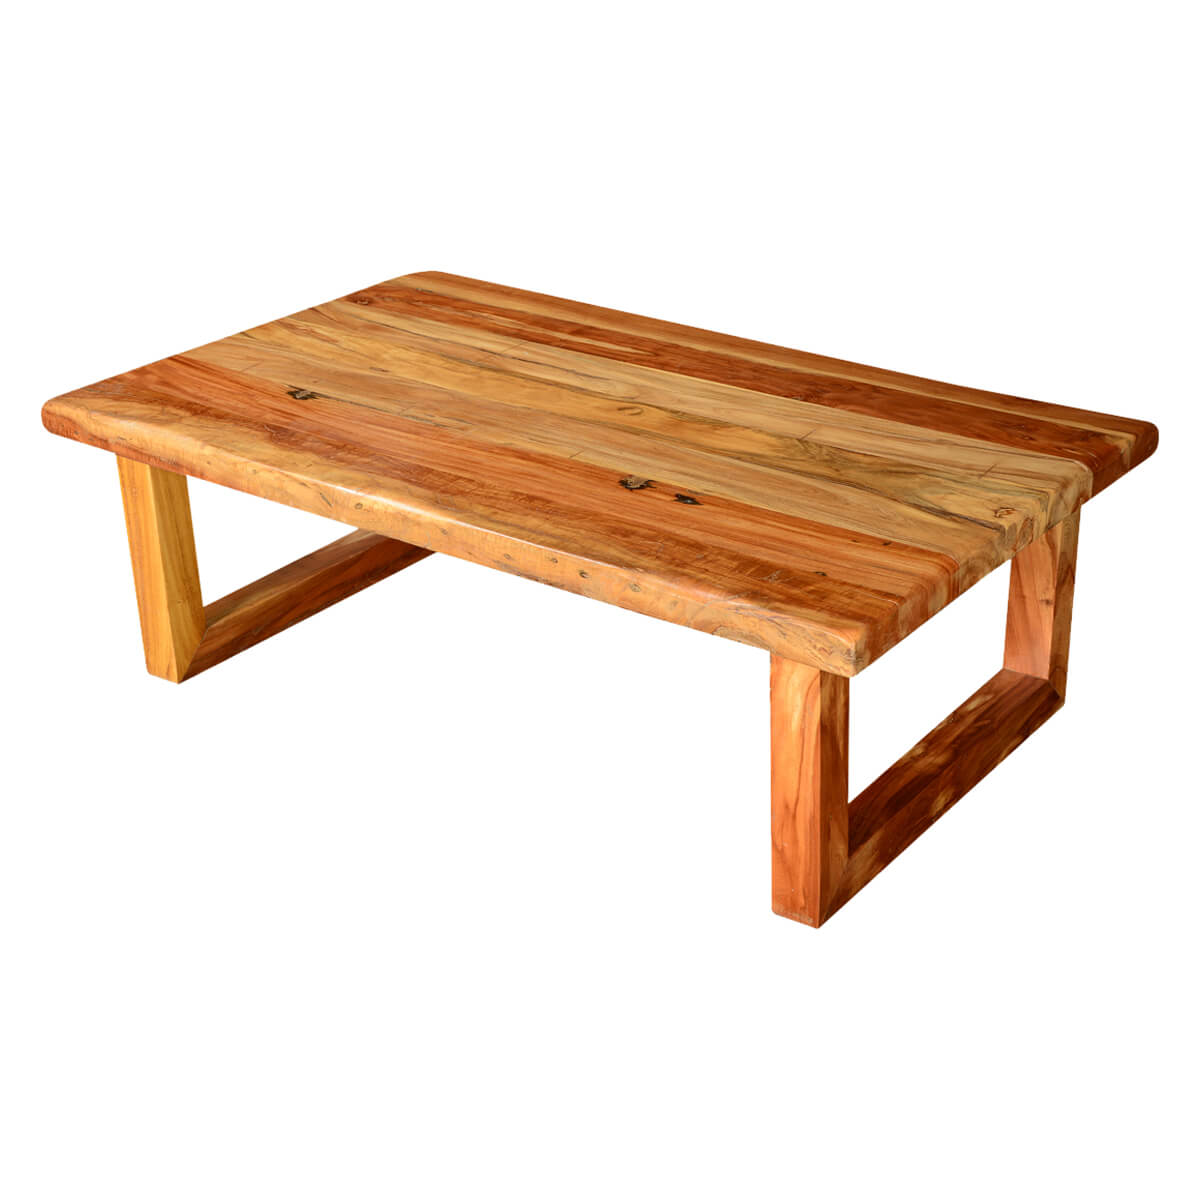 Modern rustic simplicity acacia wood quot coffee table